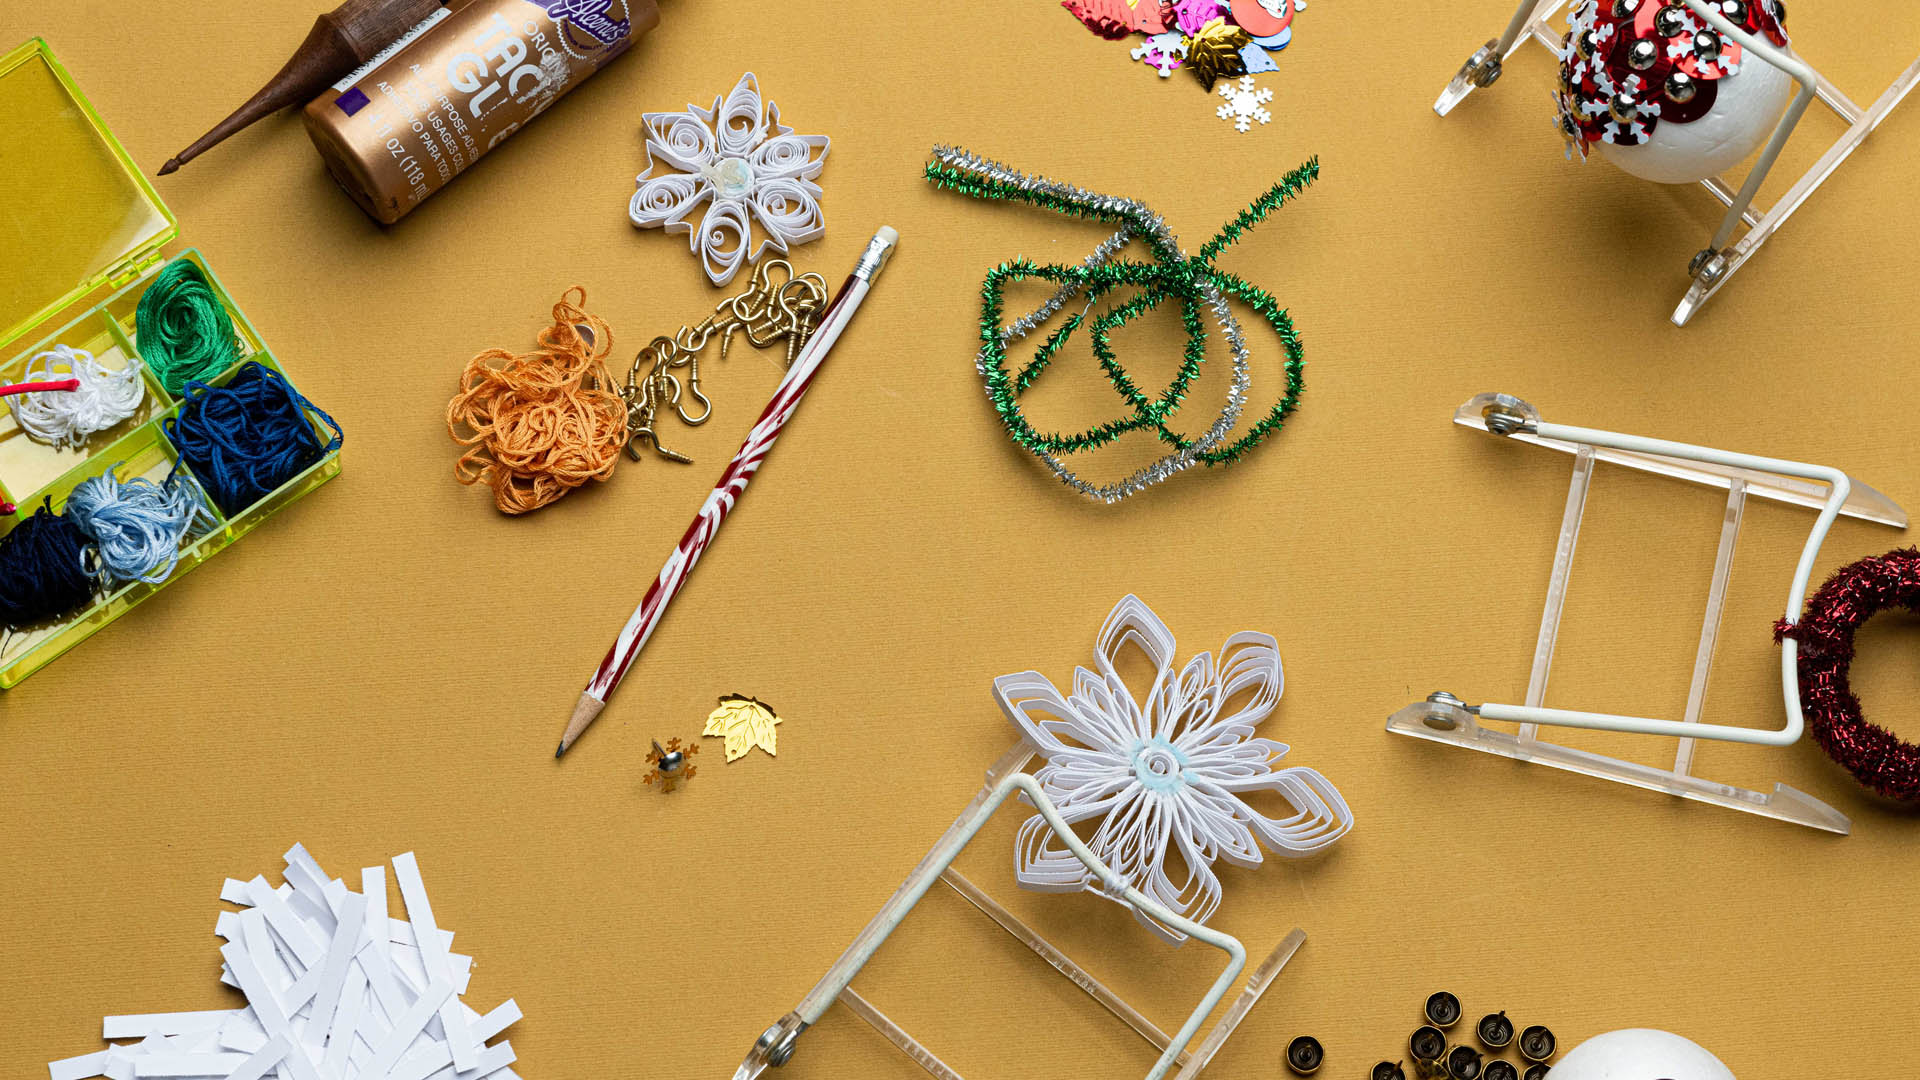 Detail of craft supplies laid out on a gold background